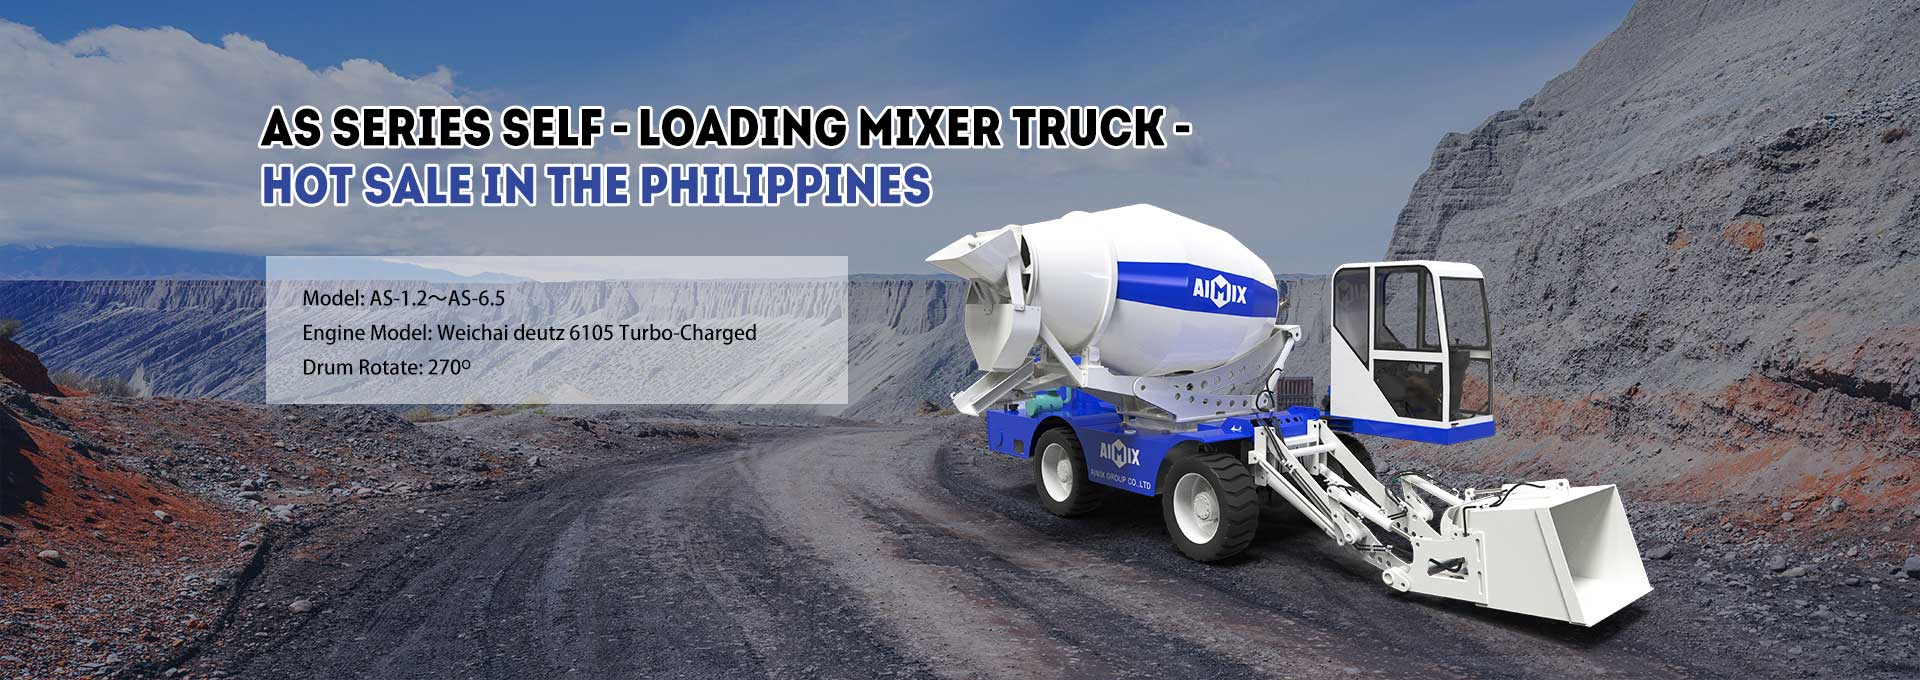 AS Series Self-loading Mixer Truck - Hot Sale In The Philippines